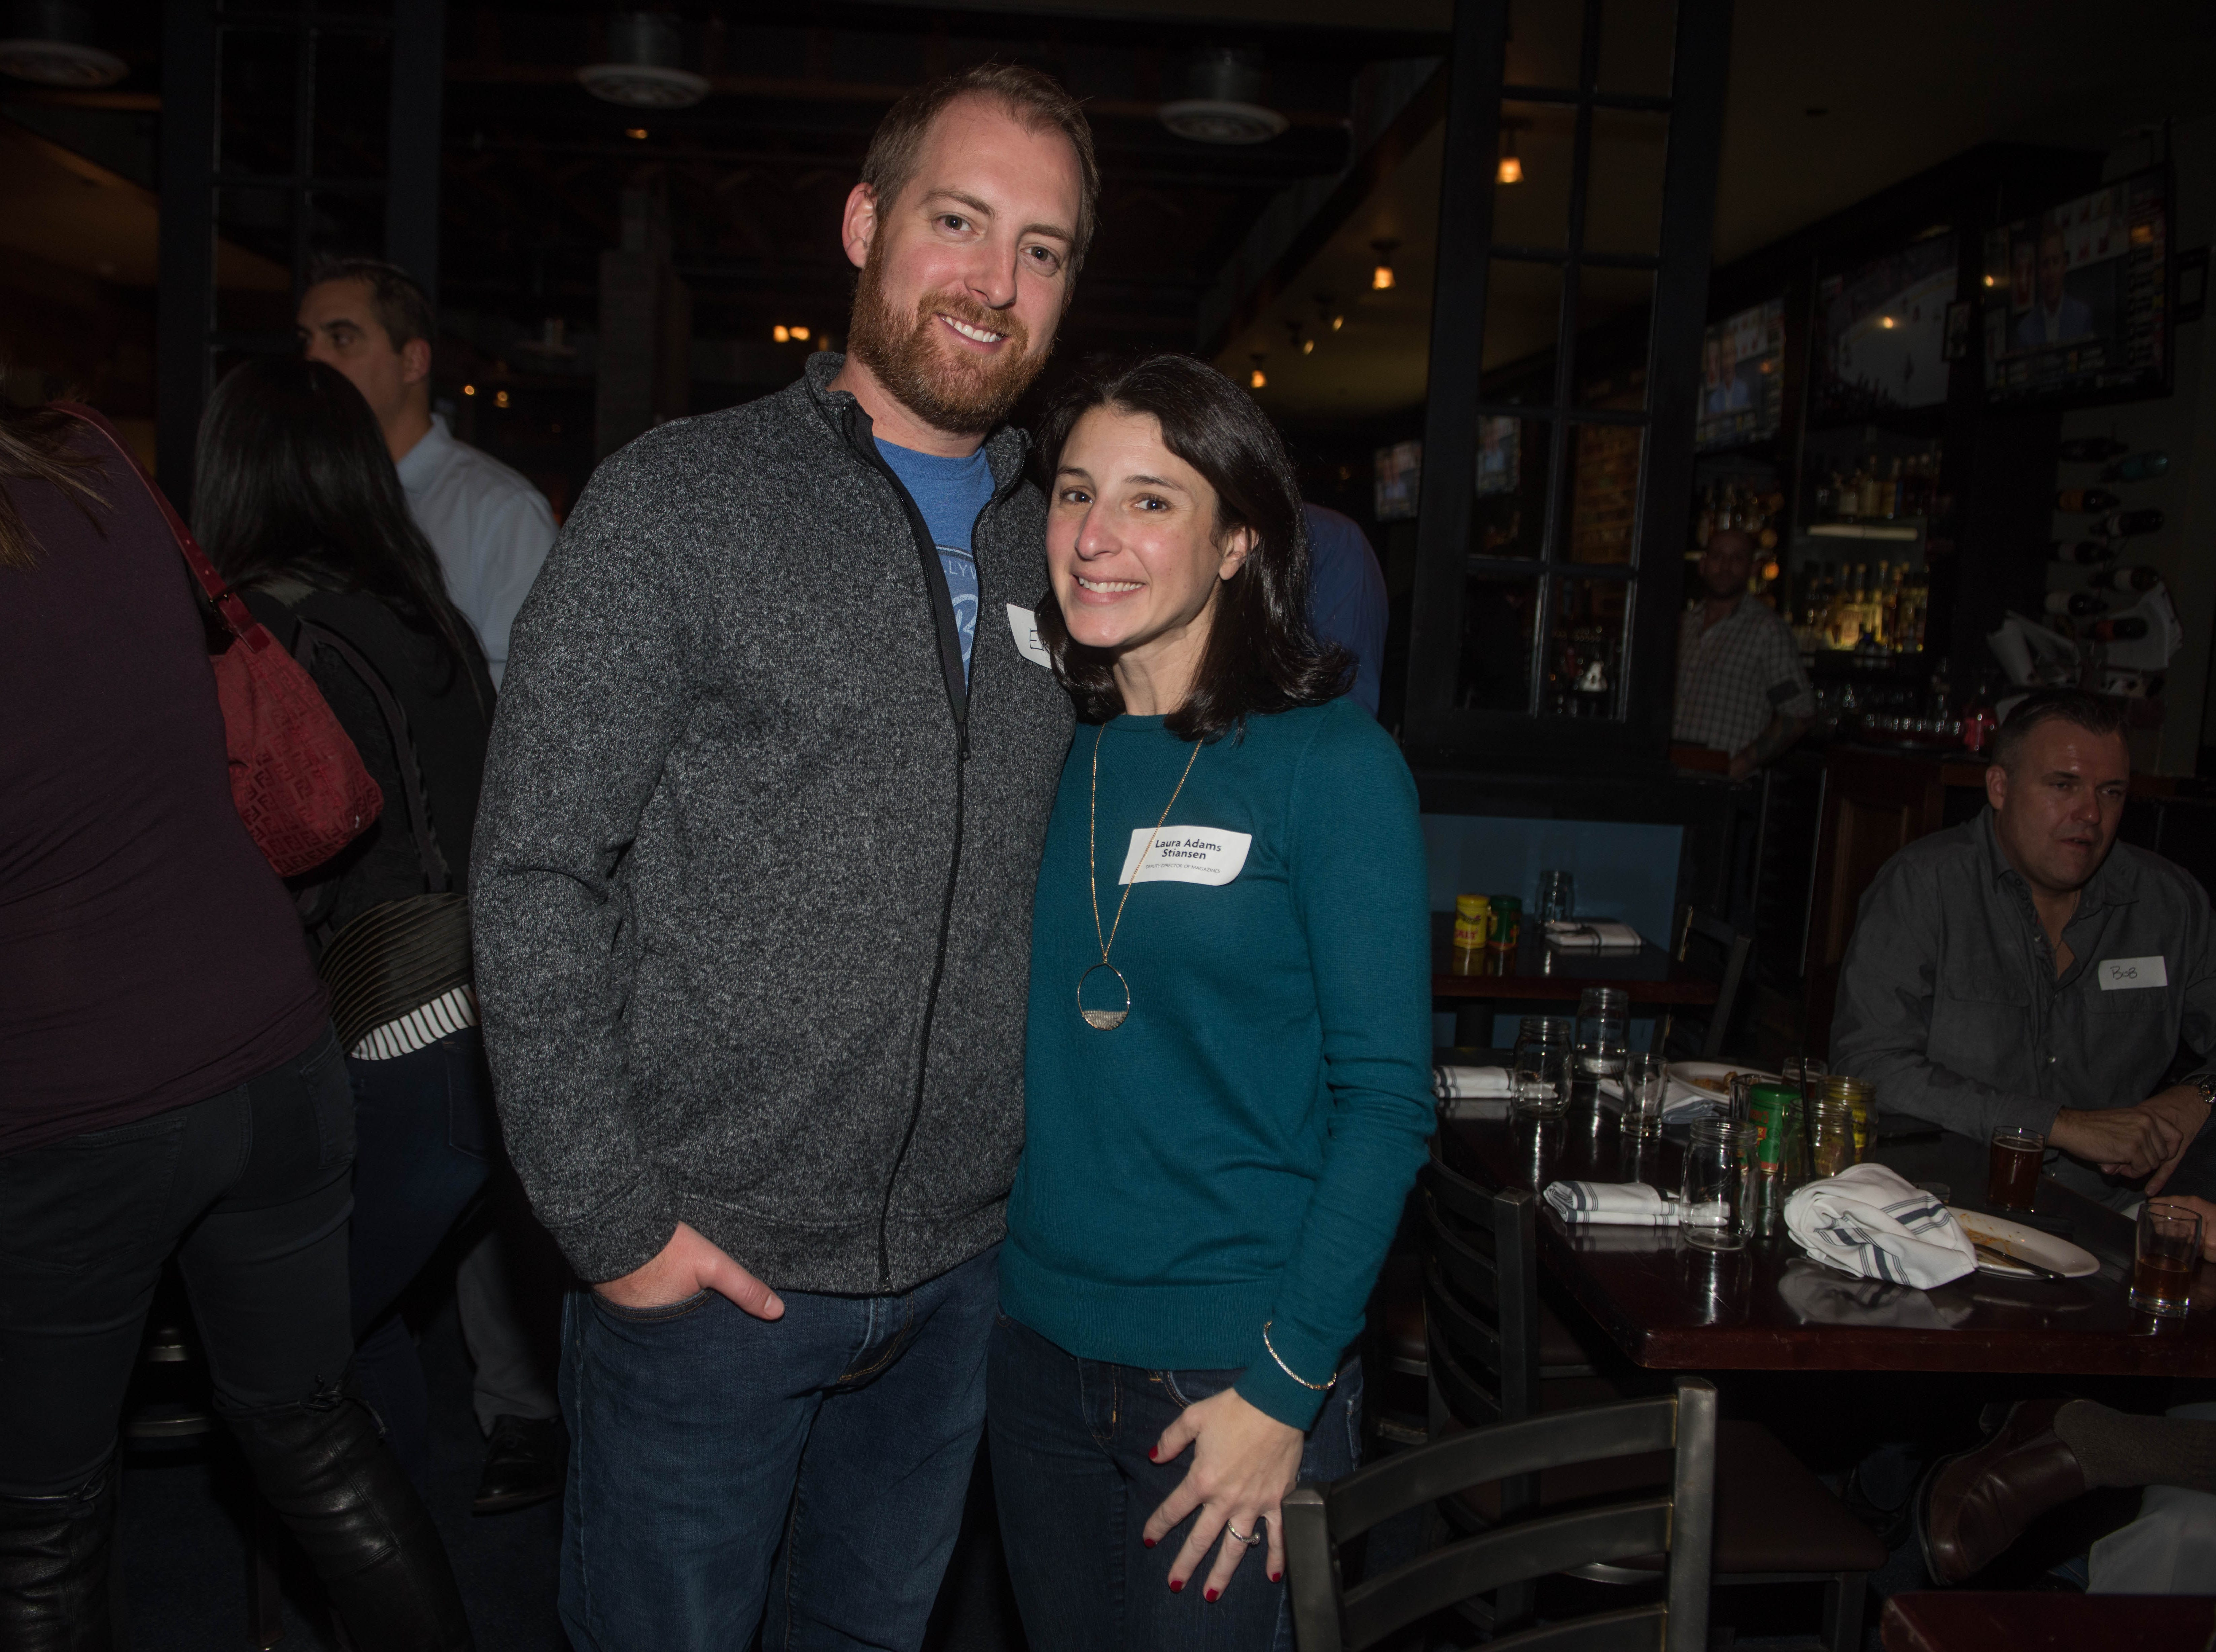 Erik Stainsen and Laura Adams Stainsen. (201) Magazine and NorthJersey.com held Taste Test Tuesday at he Dog and Cask in Rochelle Park with this month's cover model, Lauran Tuck and former cover model and former NY Giant Justin Tuck. 11/13/2018